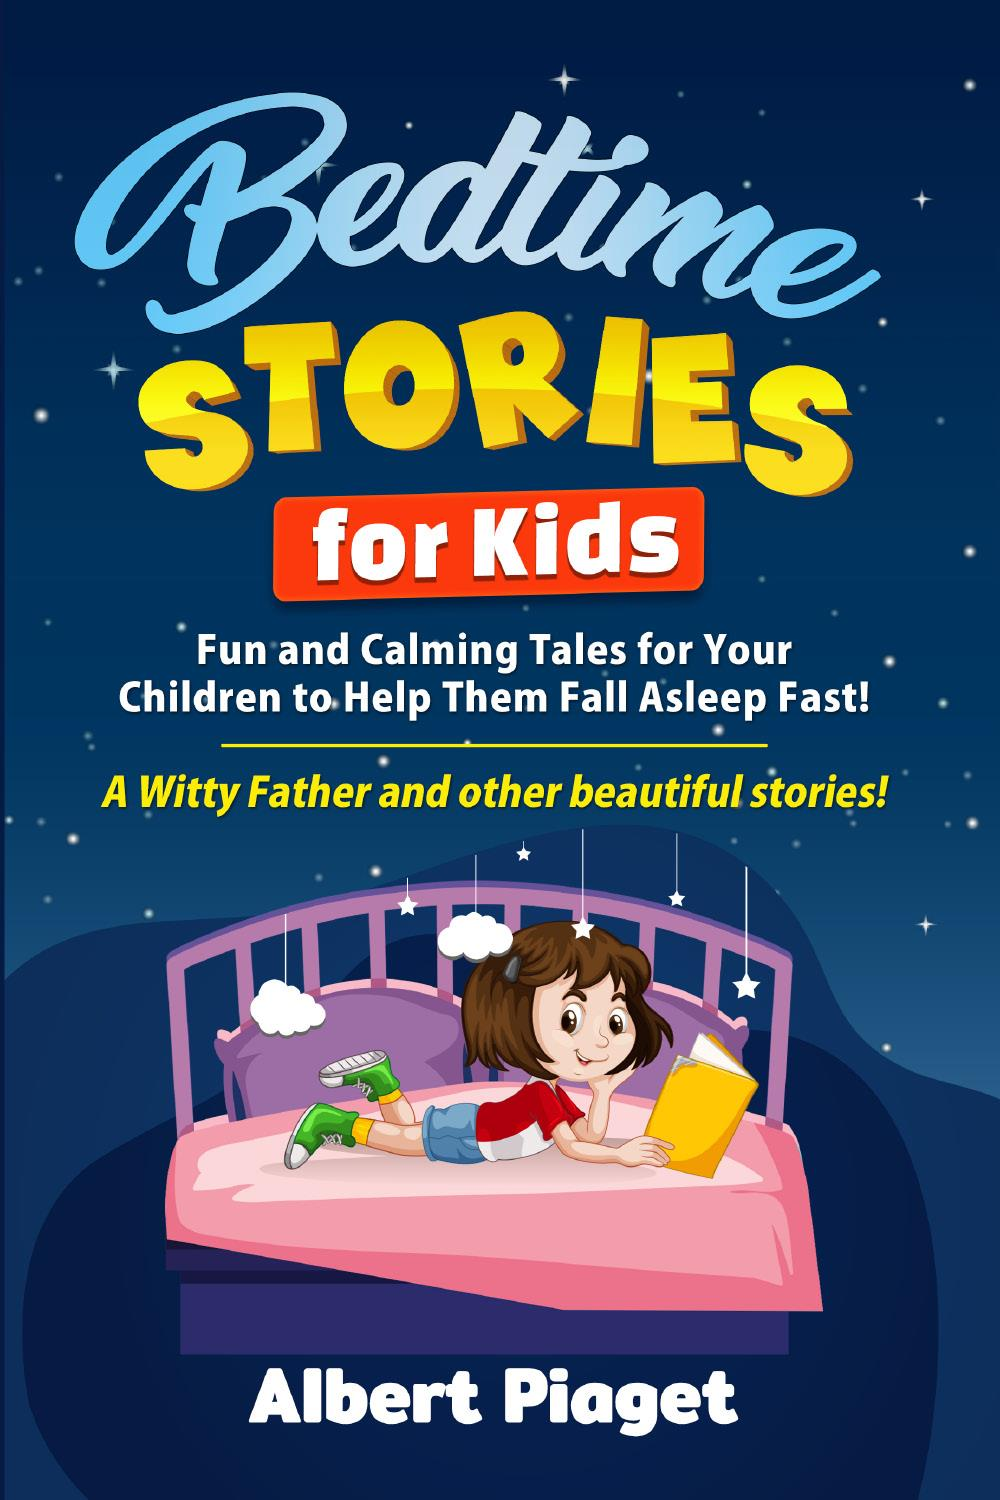 Bedtime Stories for Kids. Fun and Calming Tales for Your Children to Help Them Fall Asleep Fast! A Witty Father and other beautiful stories!